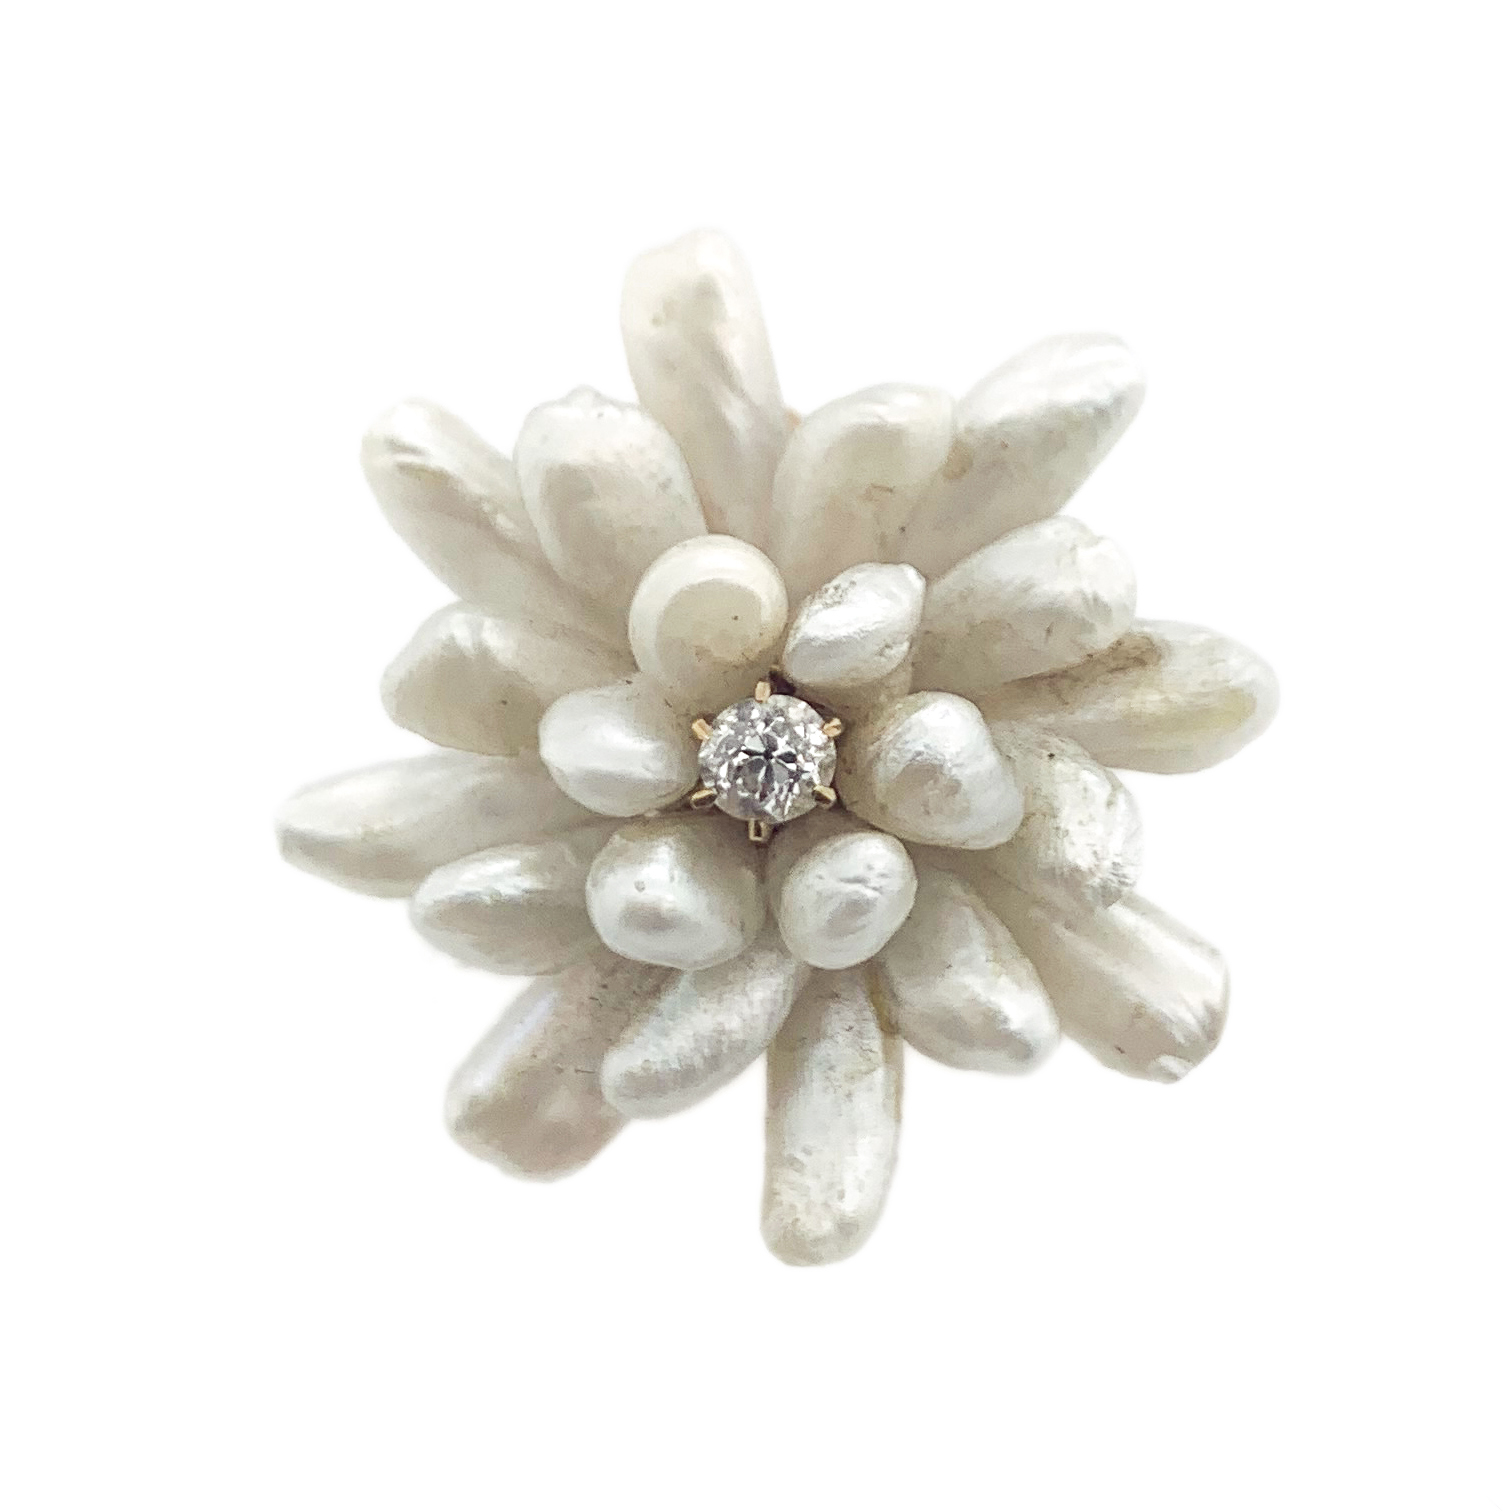 Mississippi Pearl Flower Brooch